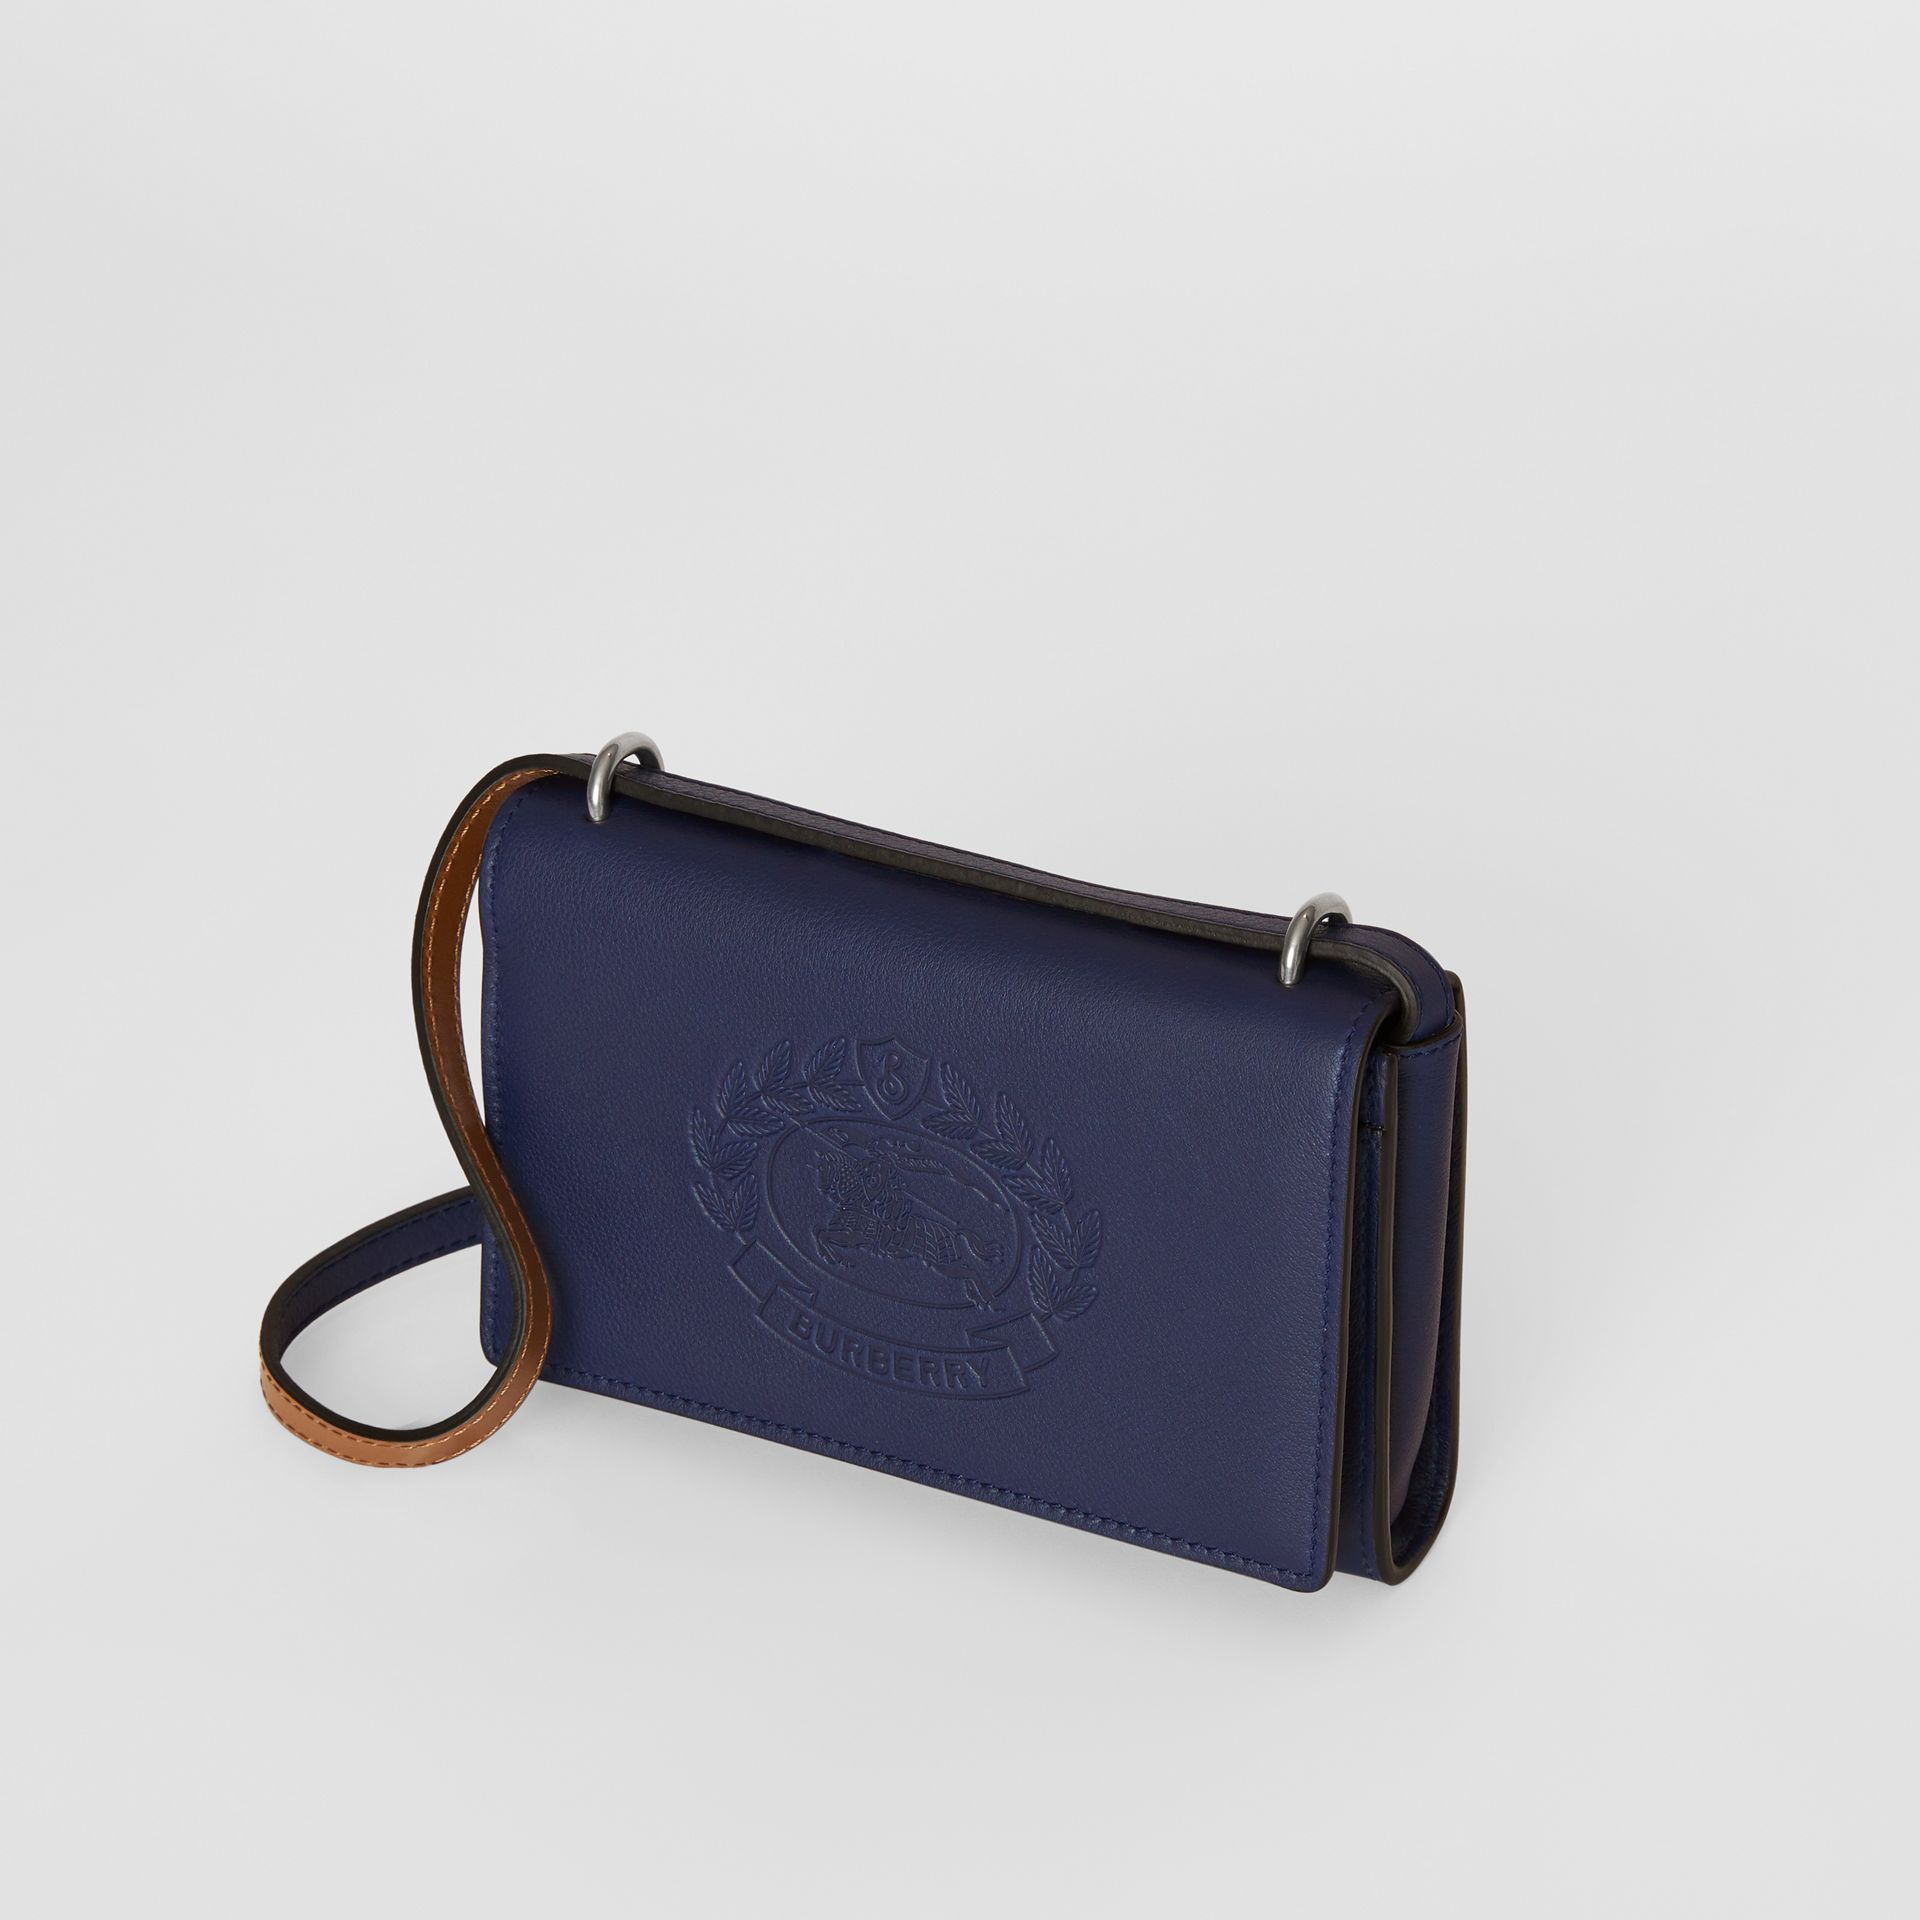 Embossed Crest Leather Wallet with Detachable Strap in Regency Blue - Women | Burberry United Kingdom - gallery image 2